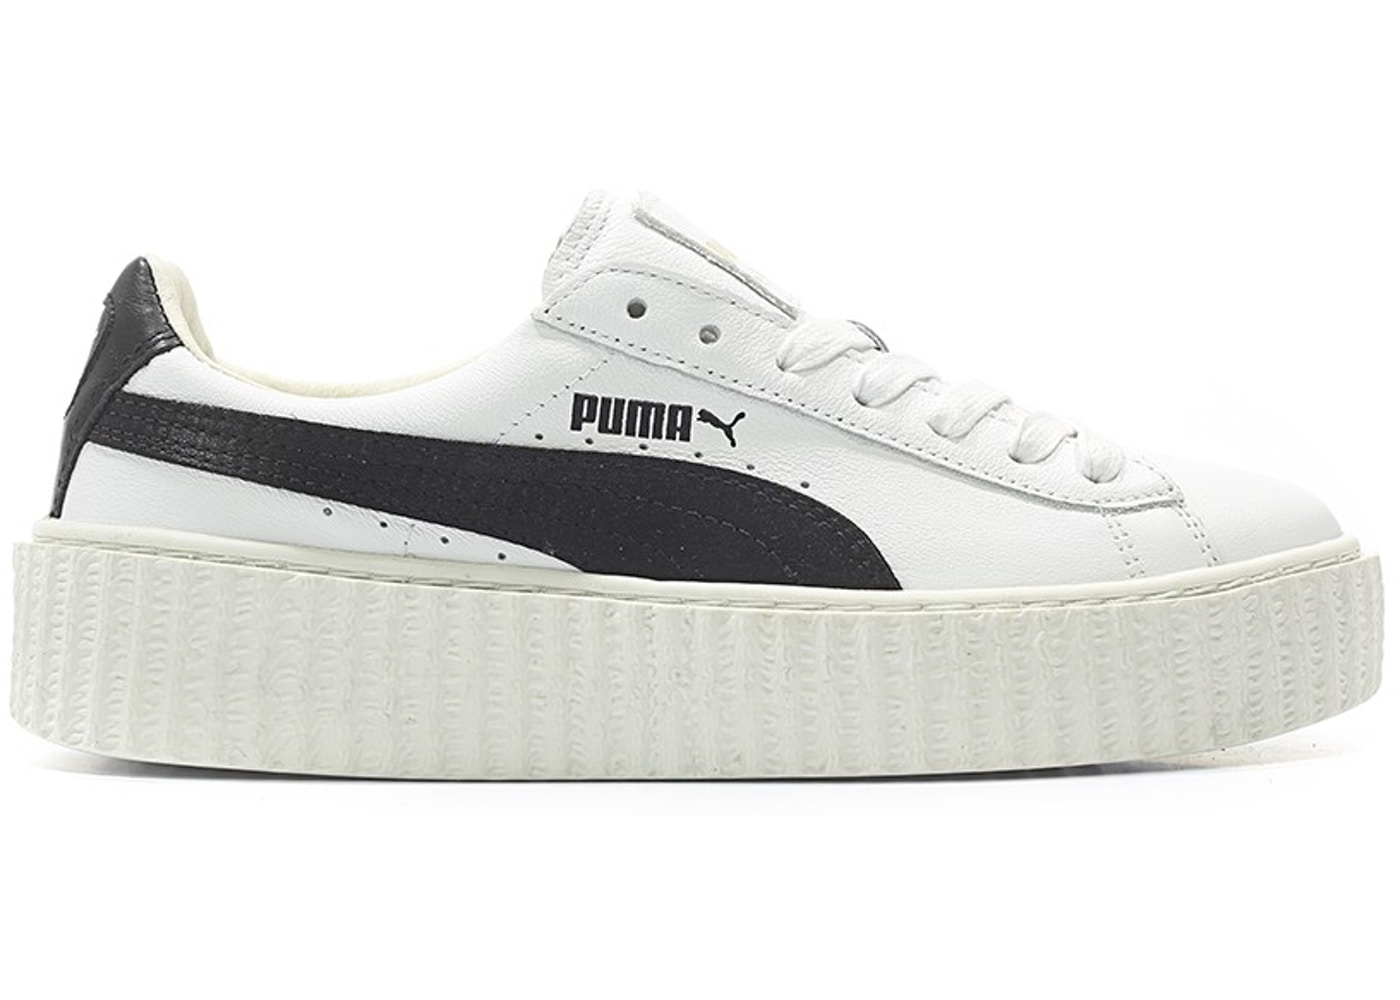 Puma Creeper Rihanna Fenty Leather White (W) - 364462-01 15e518c850f3